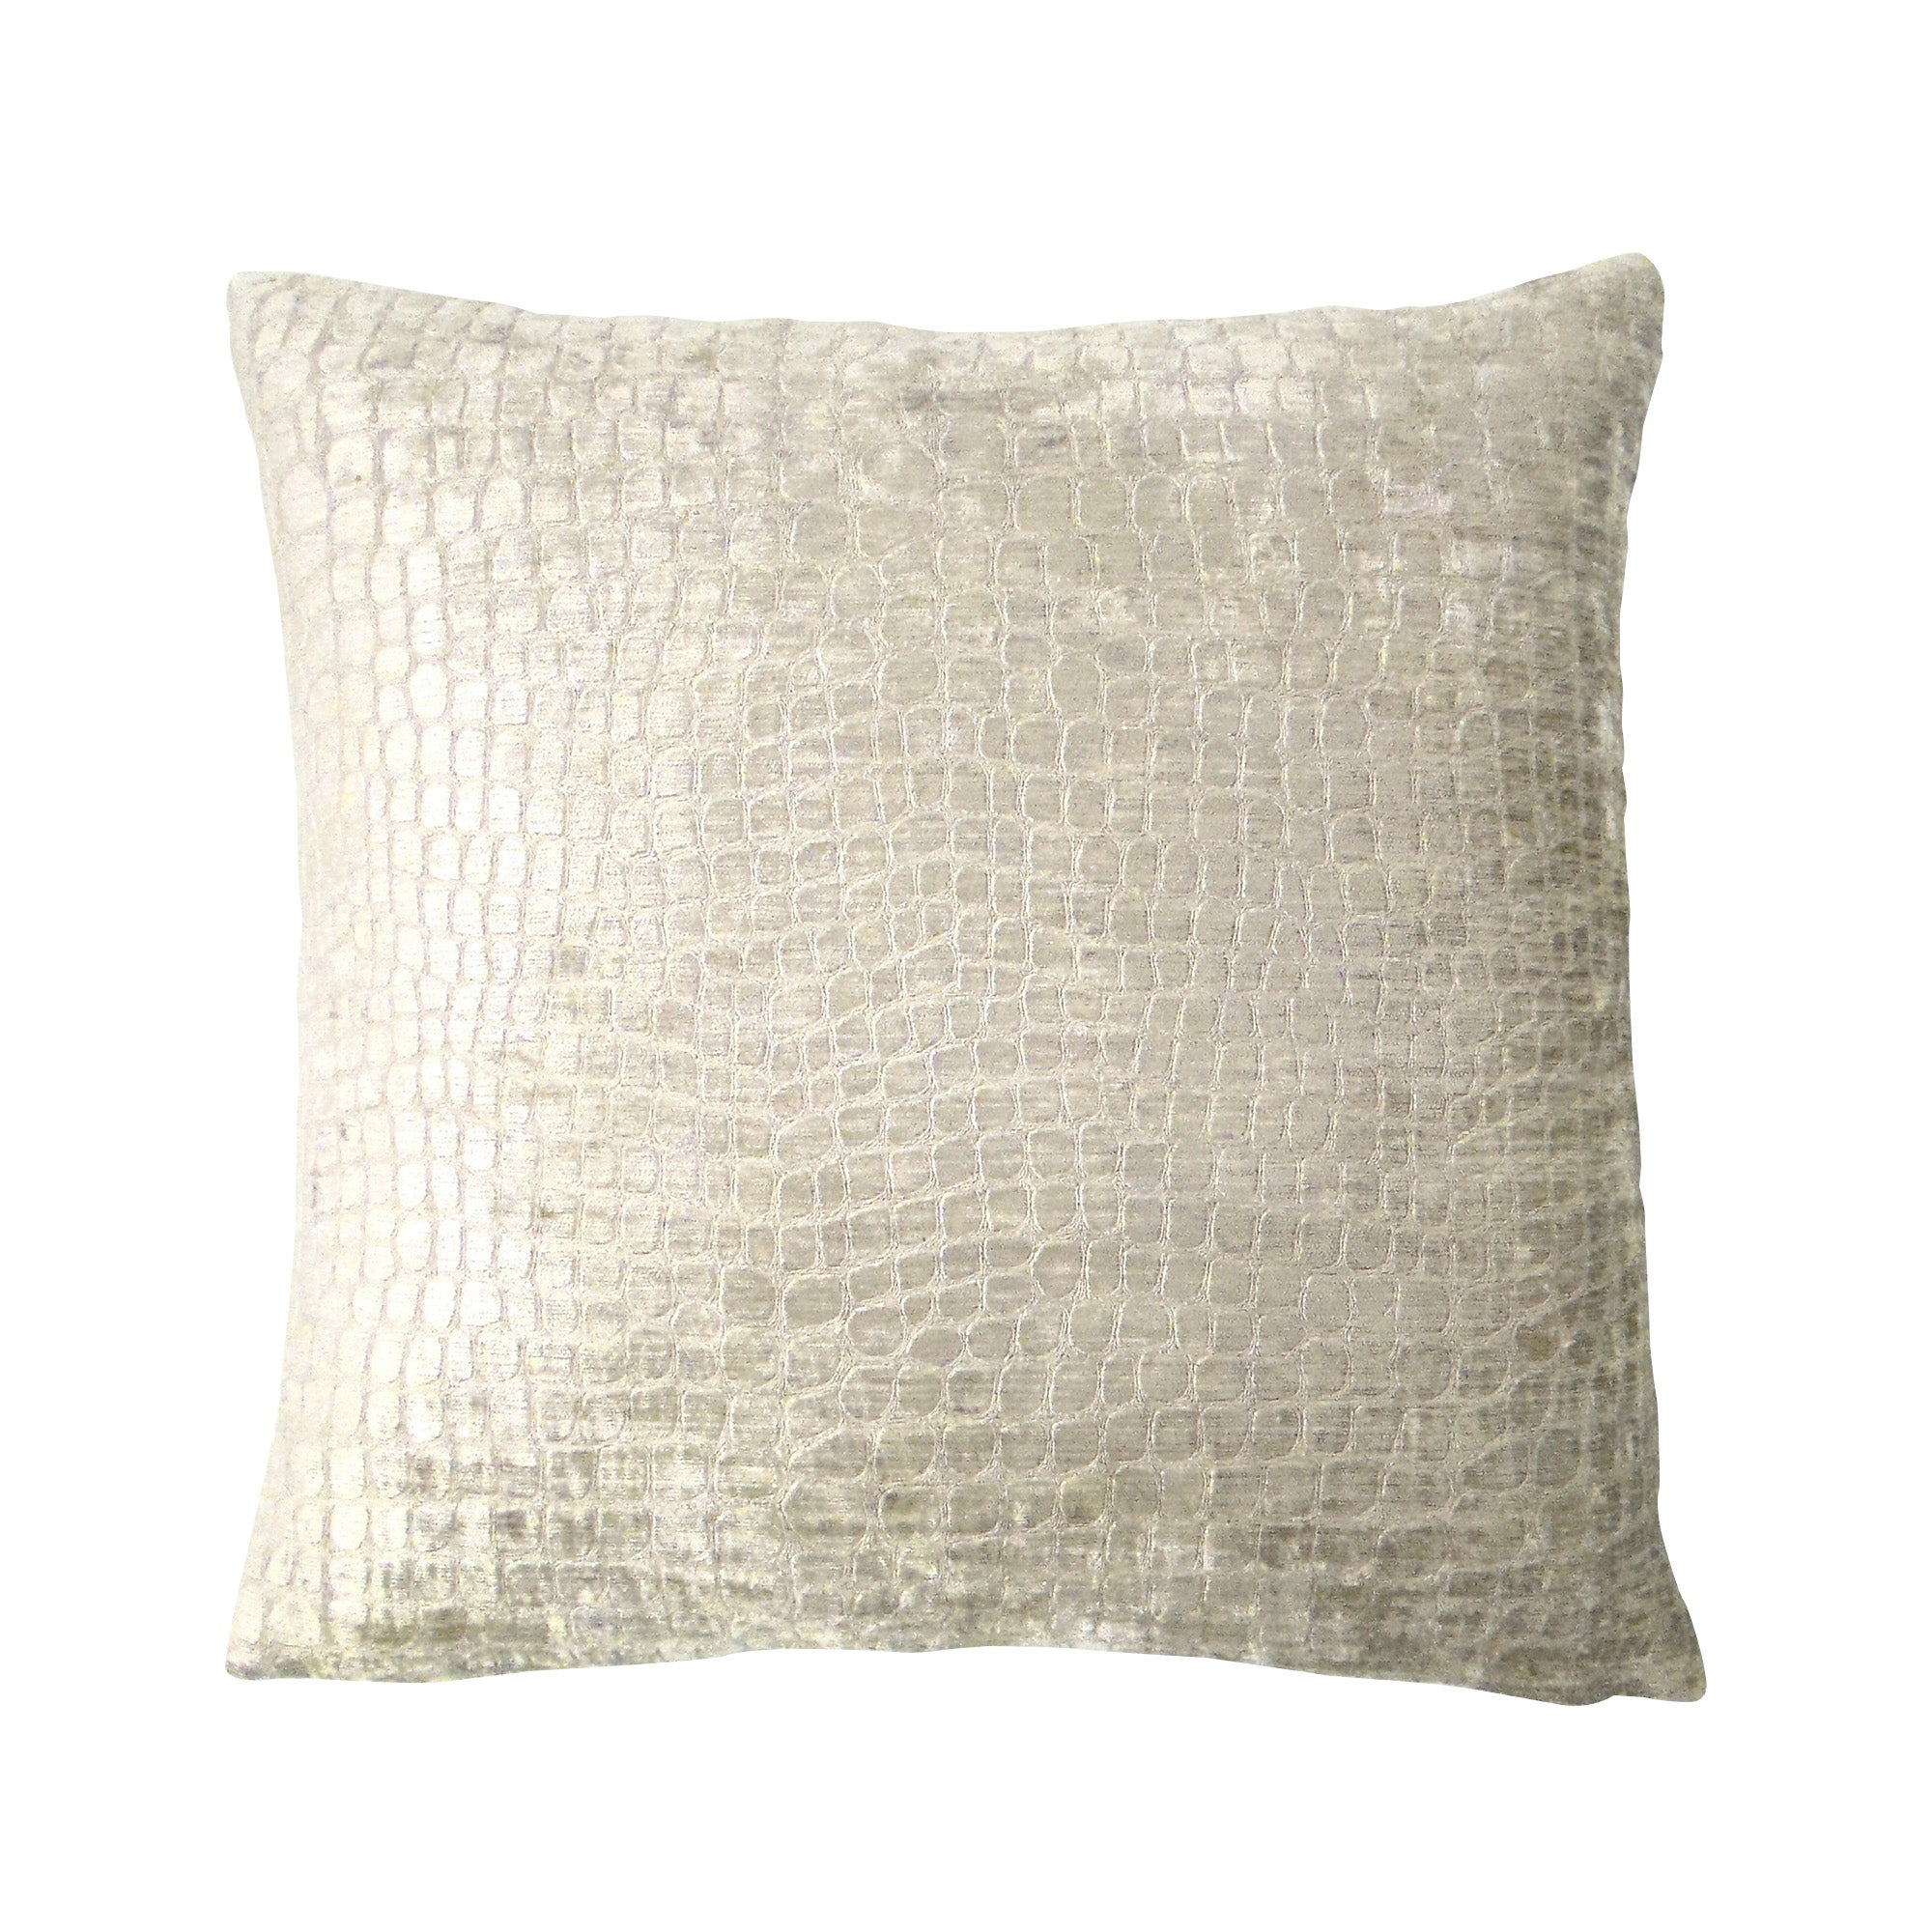 Stone Dundee Cushion Cover